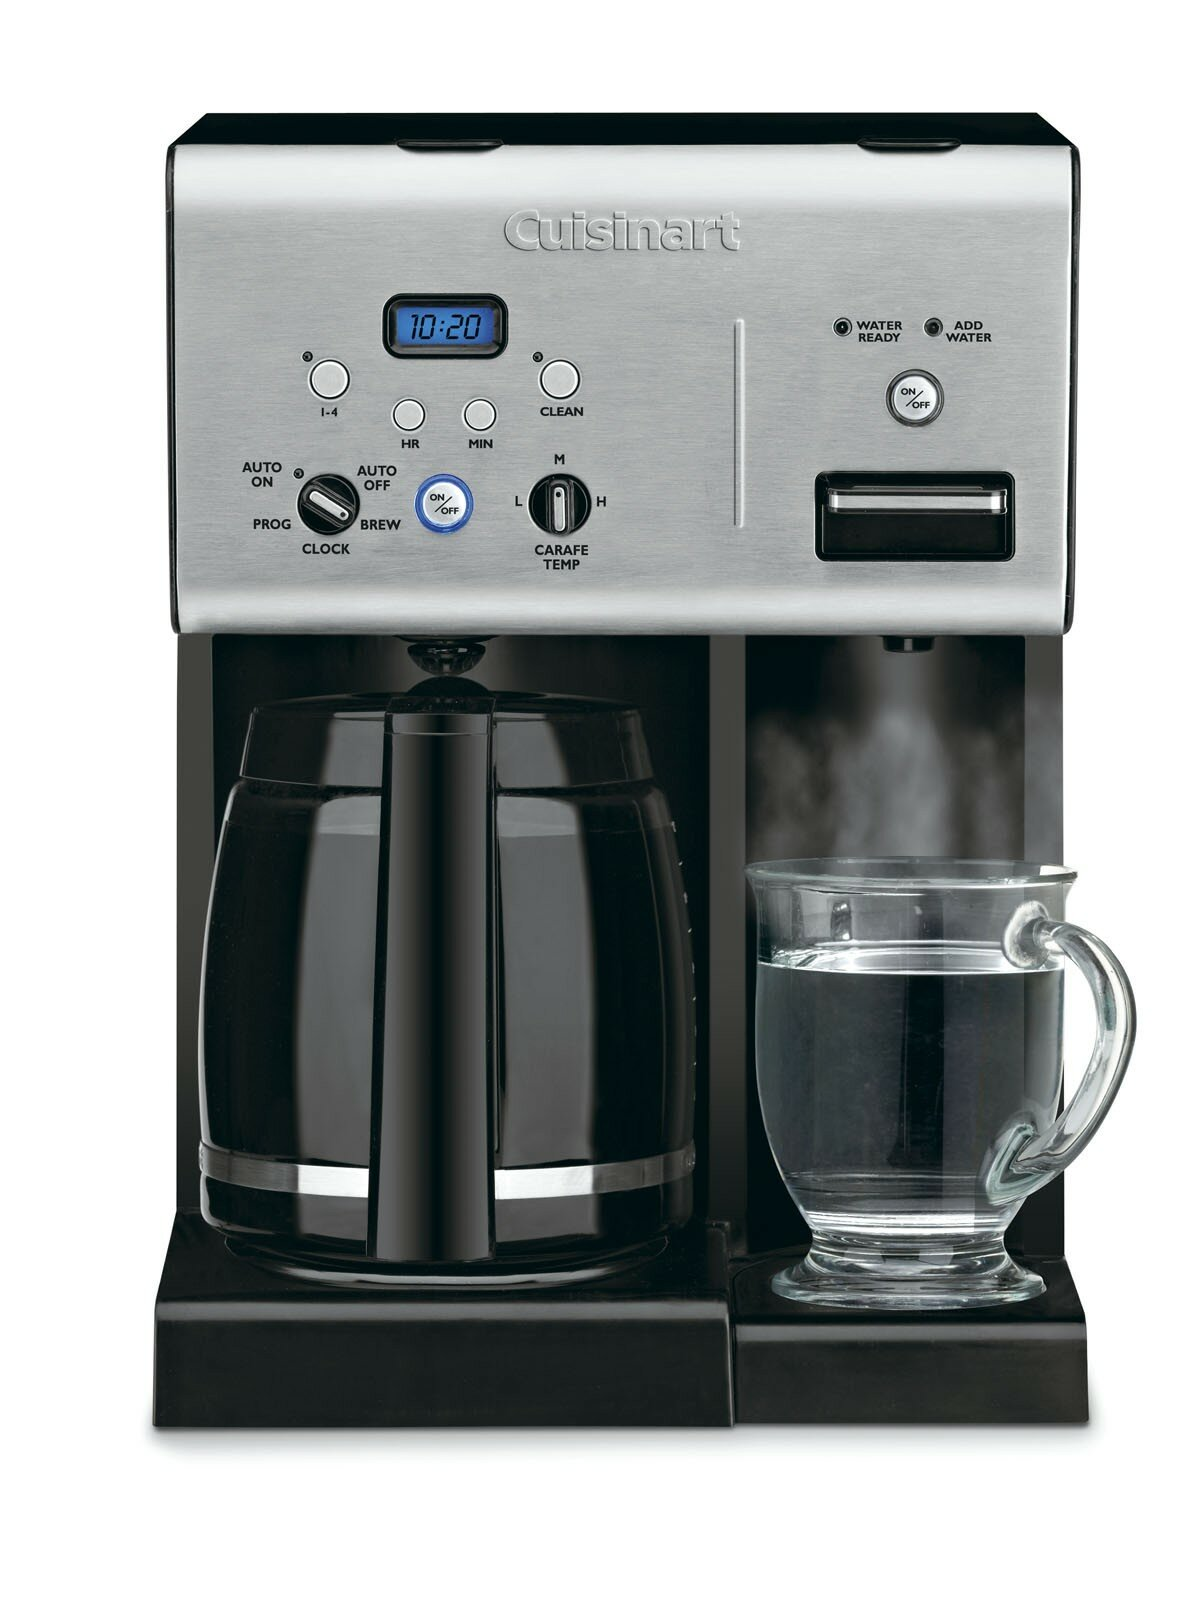 Cuisinart Programmable 12 Cup Coffee Maker With Hot Water System Reviews Wayfair